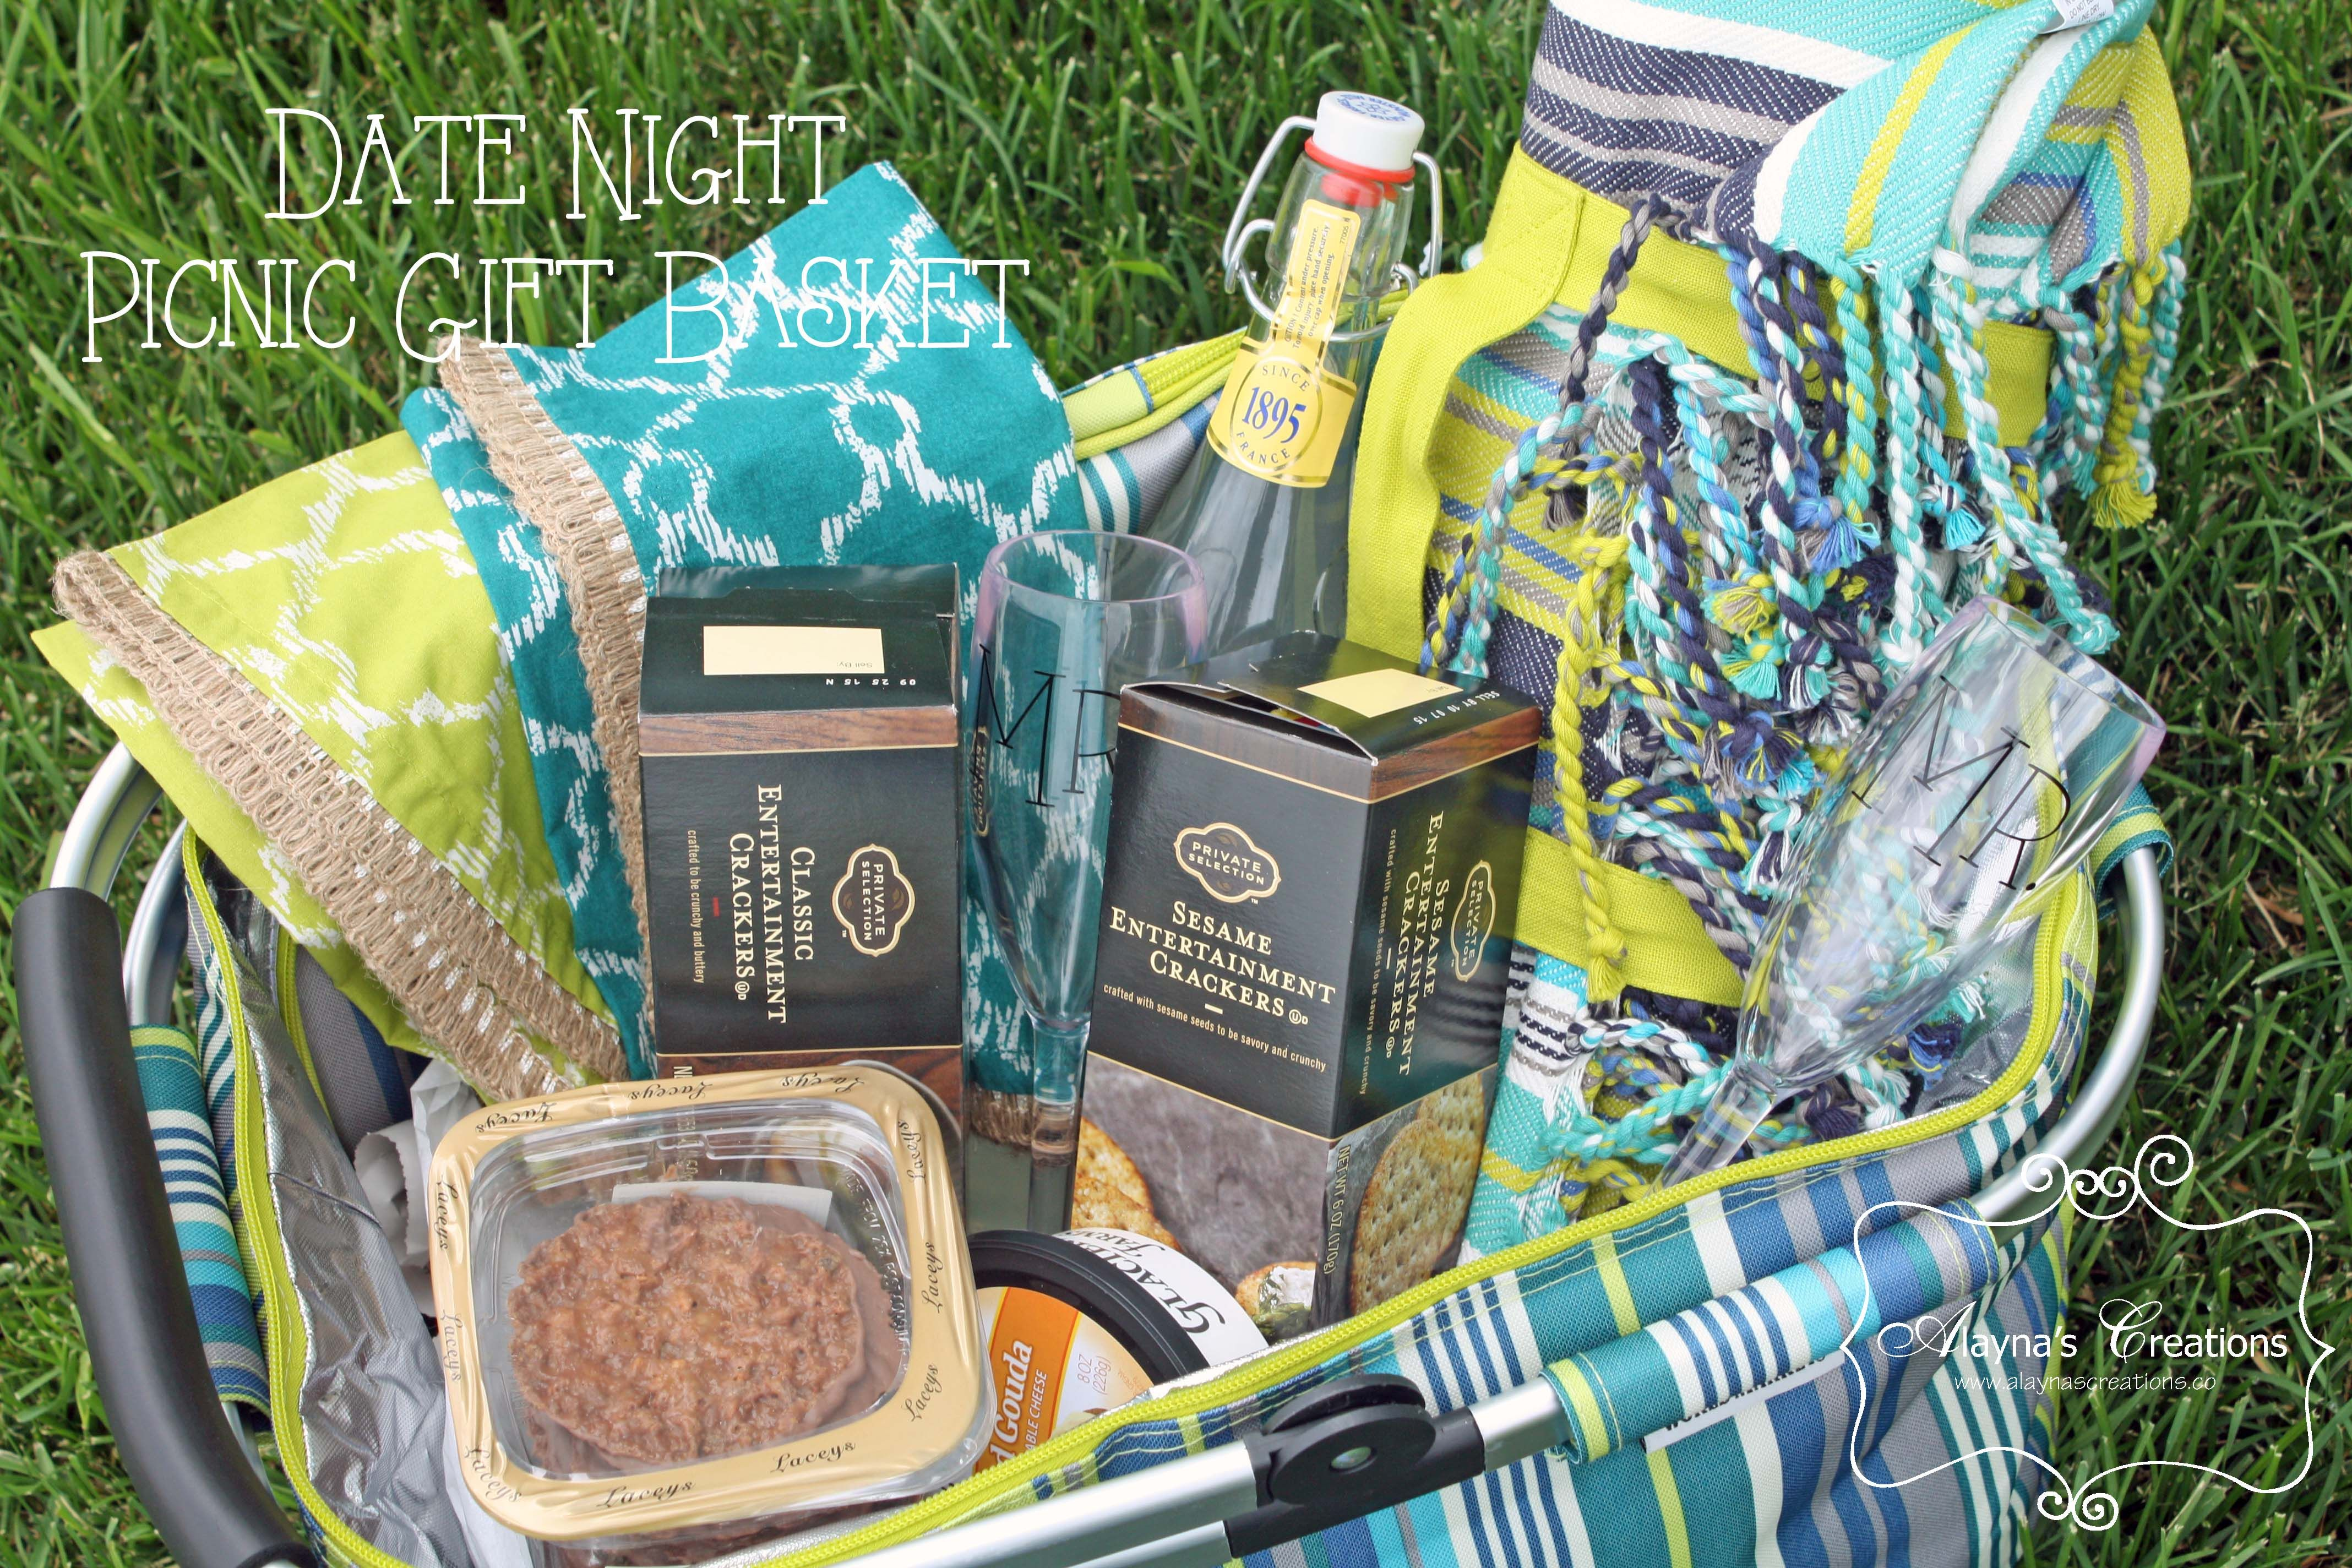 Date Night Picnic Basket Gift Diy Home Decor And Crafts Picnic Gifts Night Picnic Picnic Gift Basket